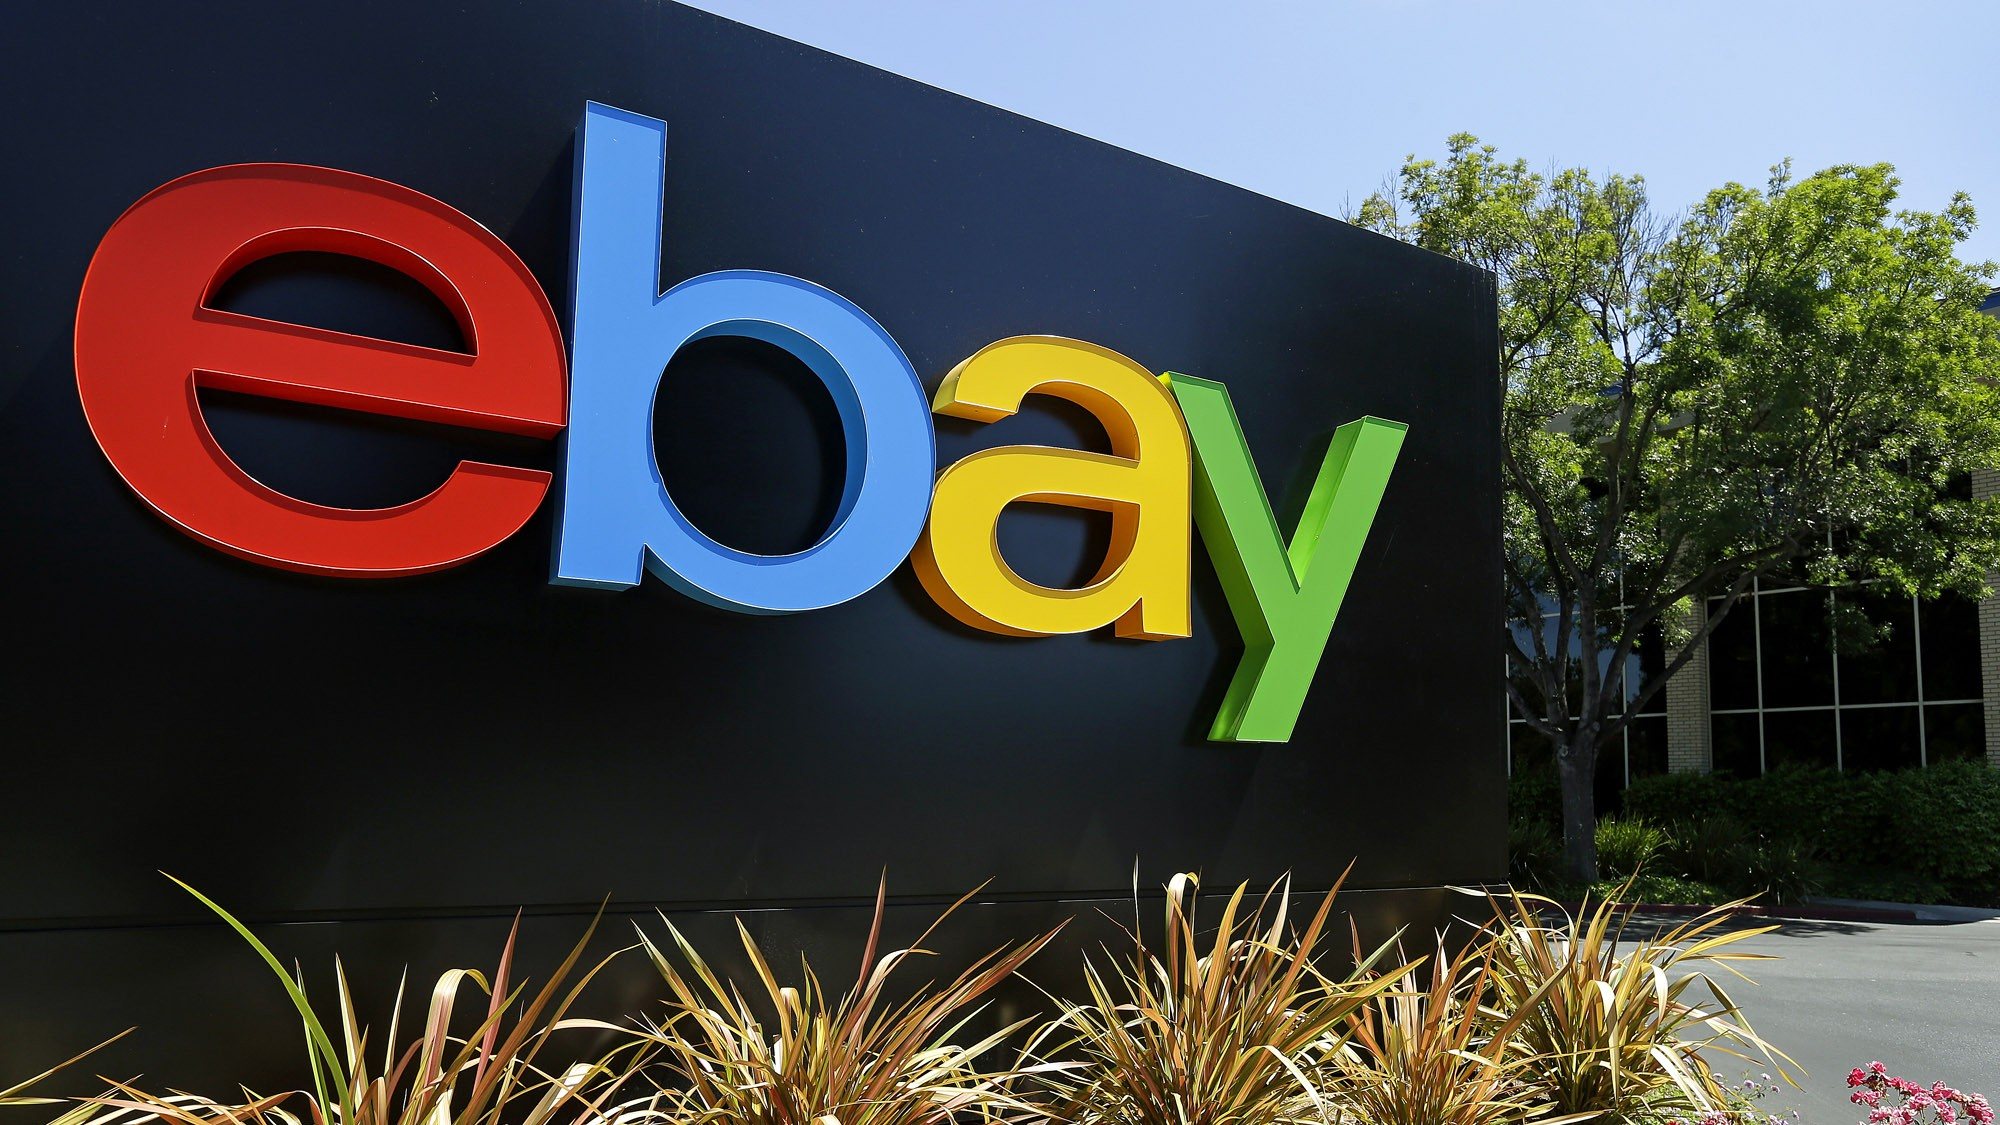 India Desire : [Working Again]Ebay Rs 200 Off On 220 Coupon Code By Entering Your  Mobile Number